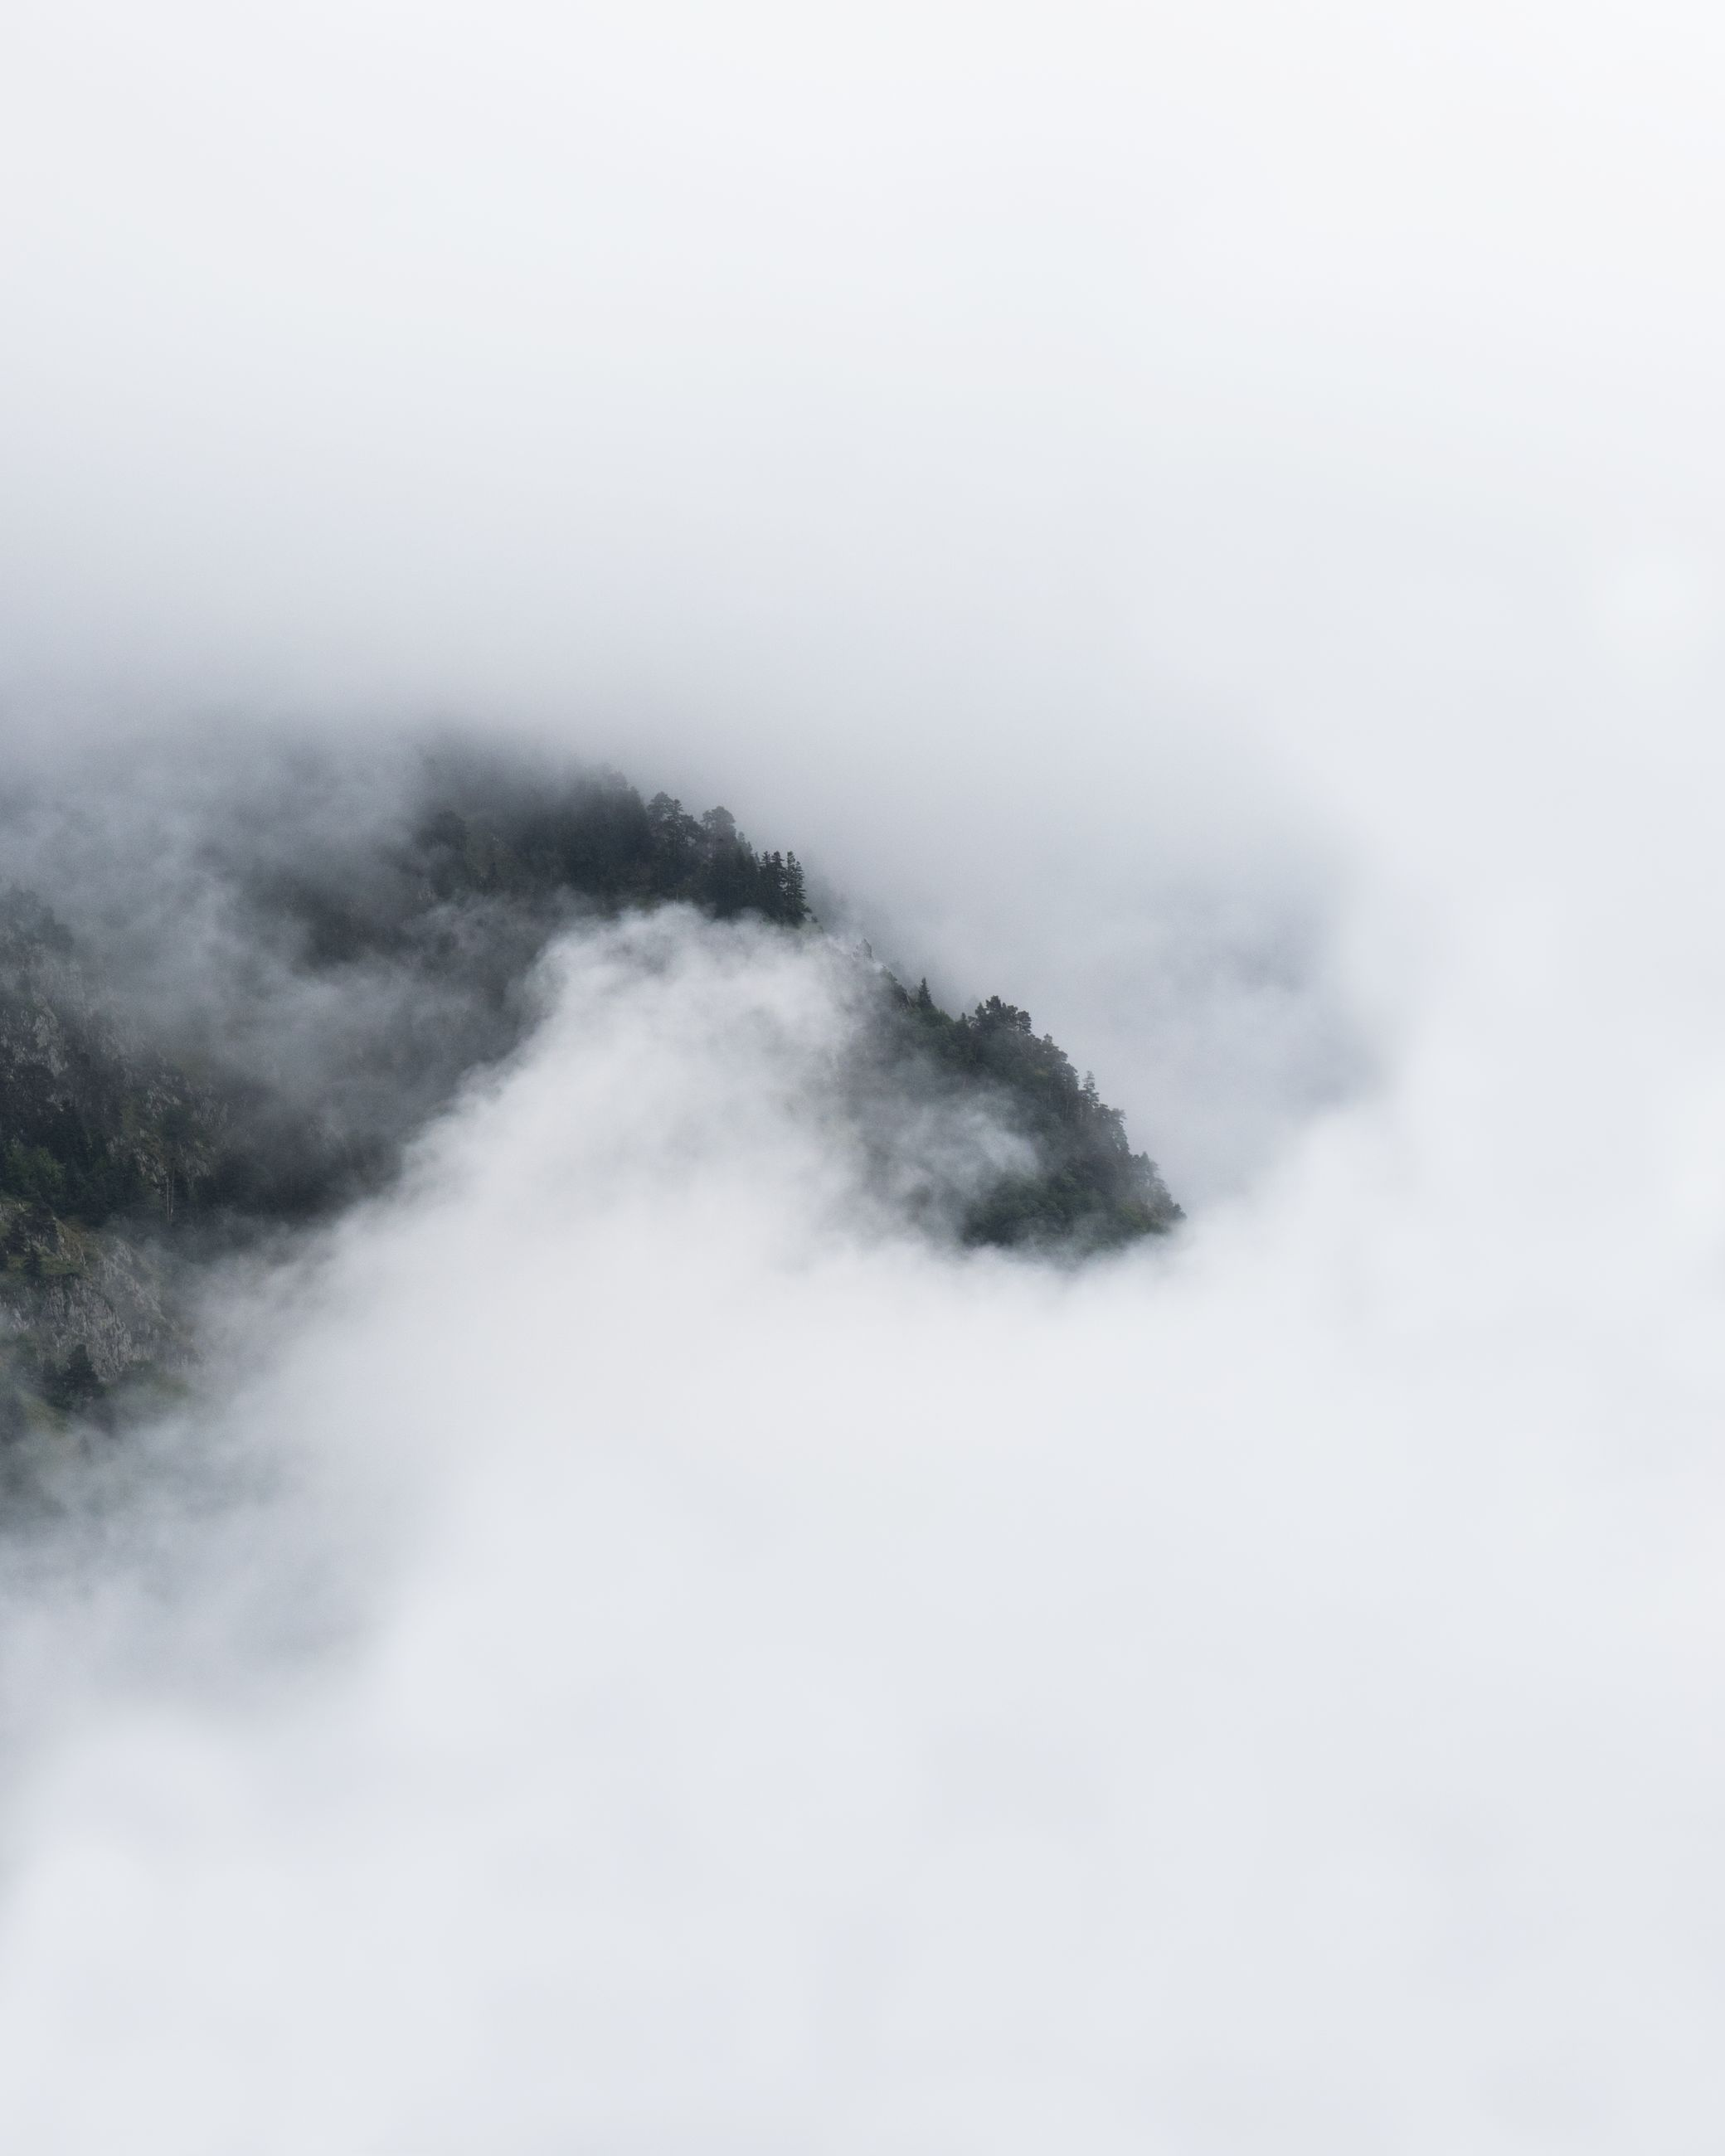 fog, cloud, snow, environment, no people, mist, beauty in nature, scenics - nature, nature, sky, landscape, mountain, copy space, outdoors, non-urban scene, day, wave, cold temperature, smoke, white, tranquility